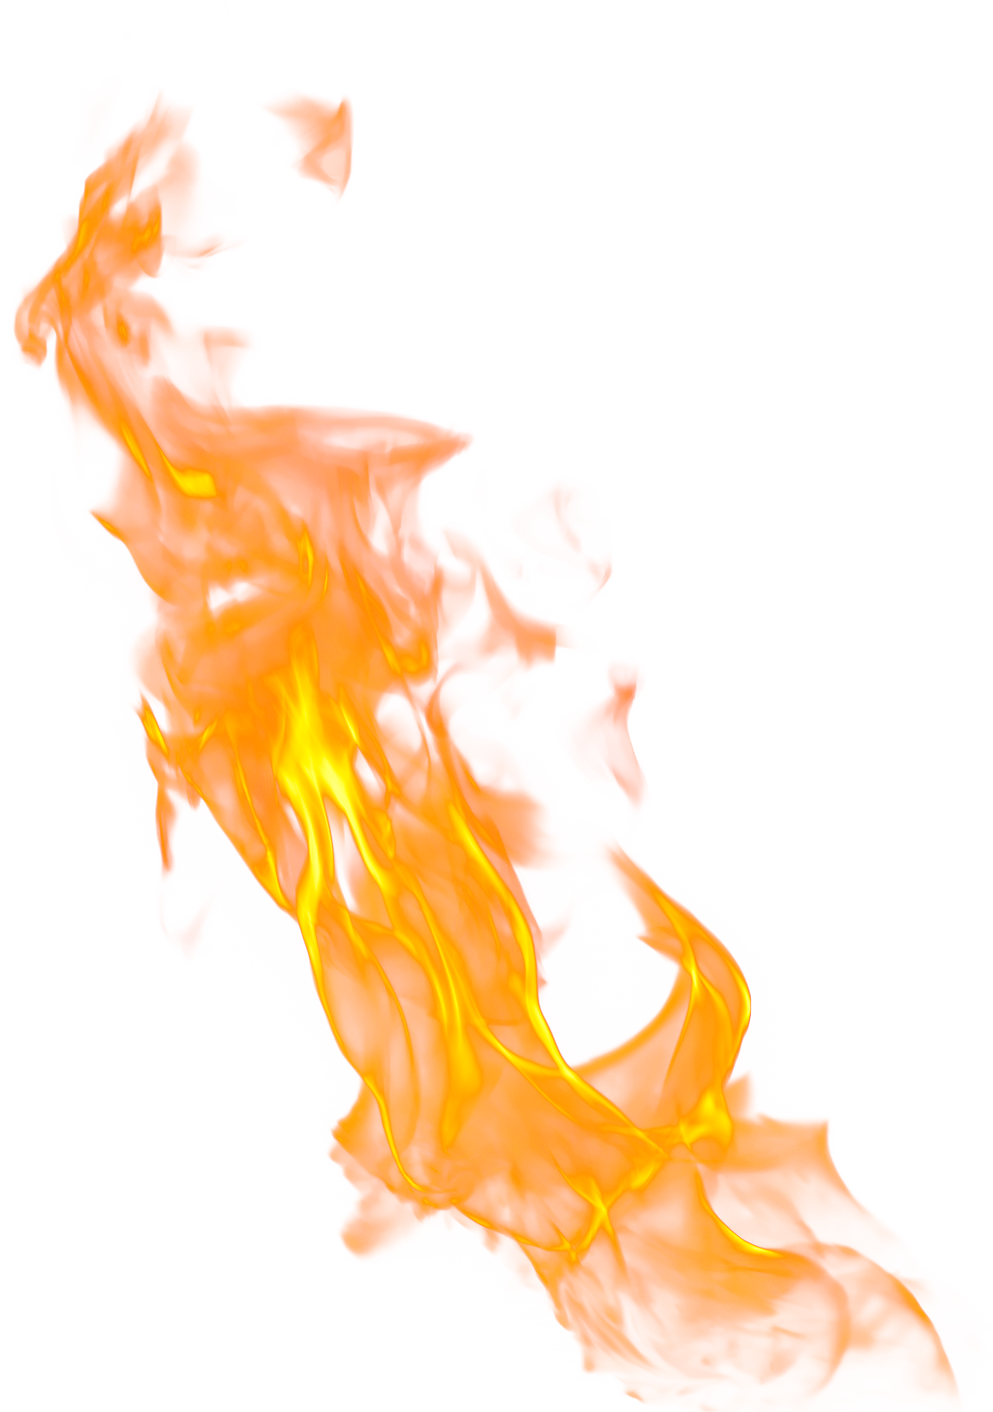 Fire Flame Png Image Blue Background Images Png Images Love Background Images